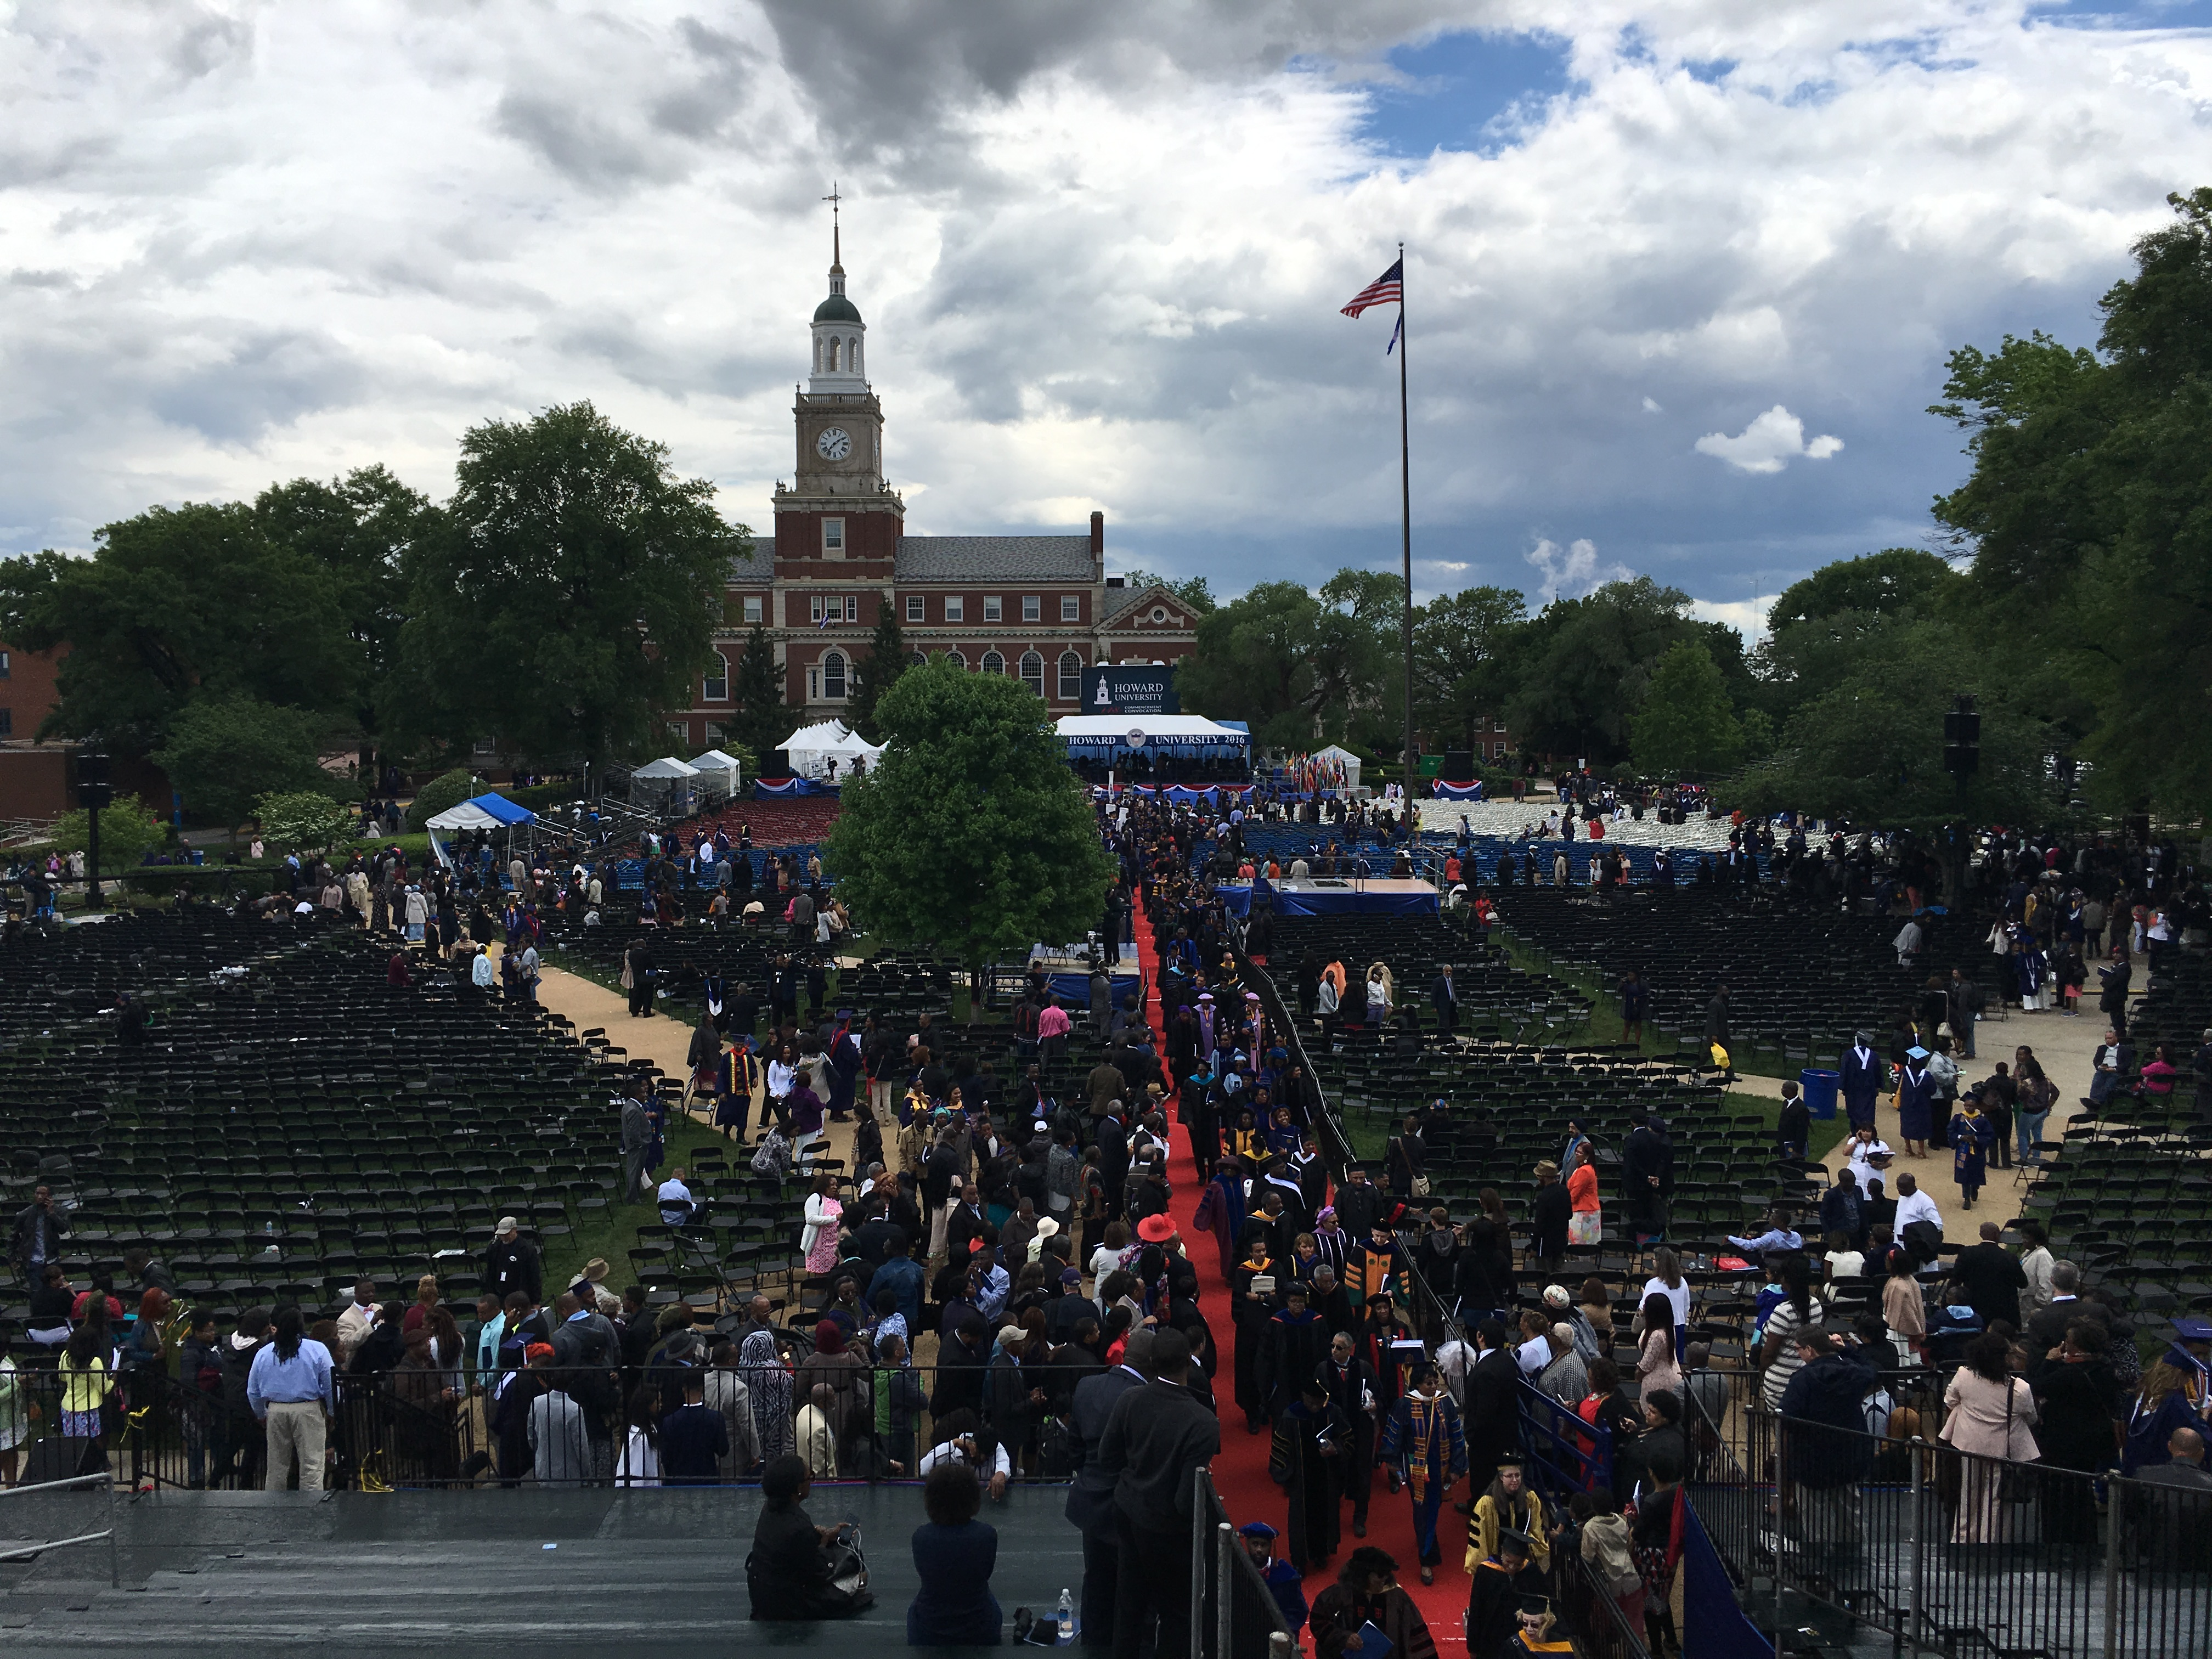 The Howard University Commencement Convocation